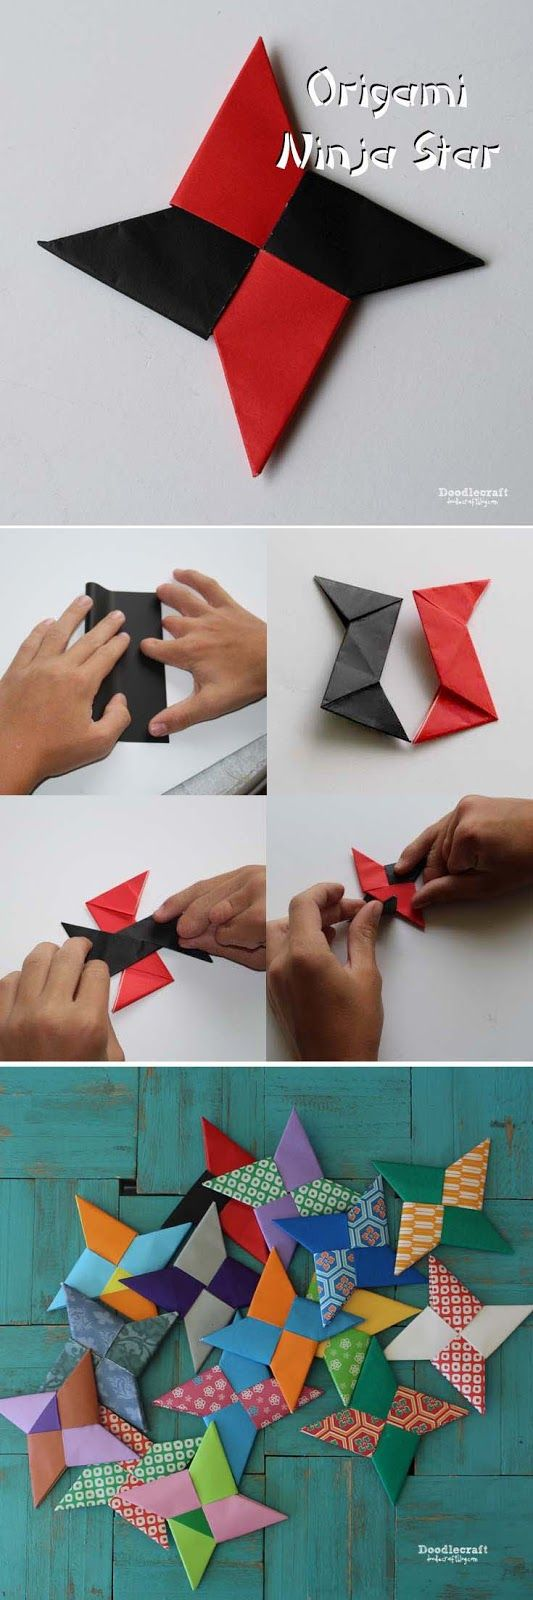 Origami Ninja Stars!  Paper folding Ninja Stars is such a fun activity for kids!